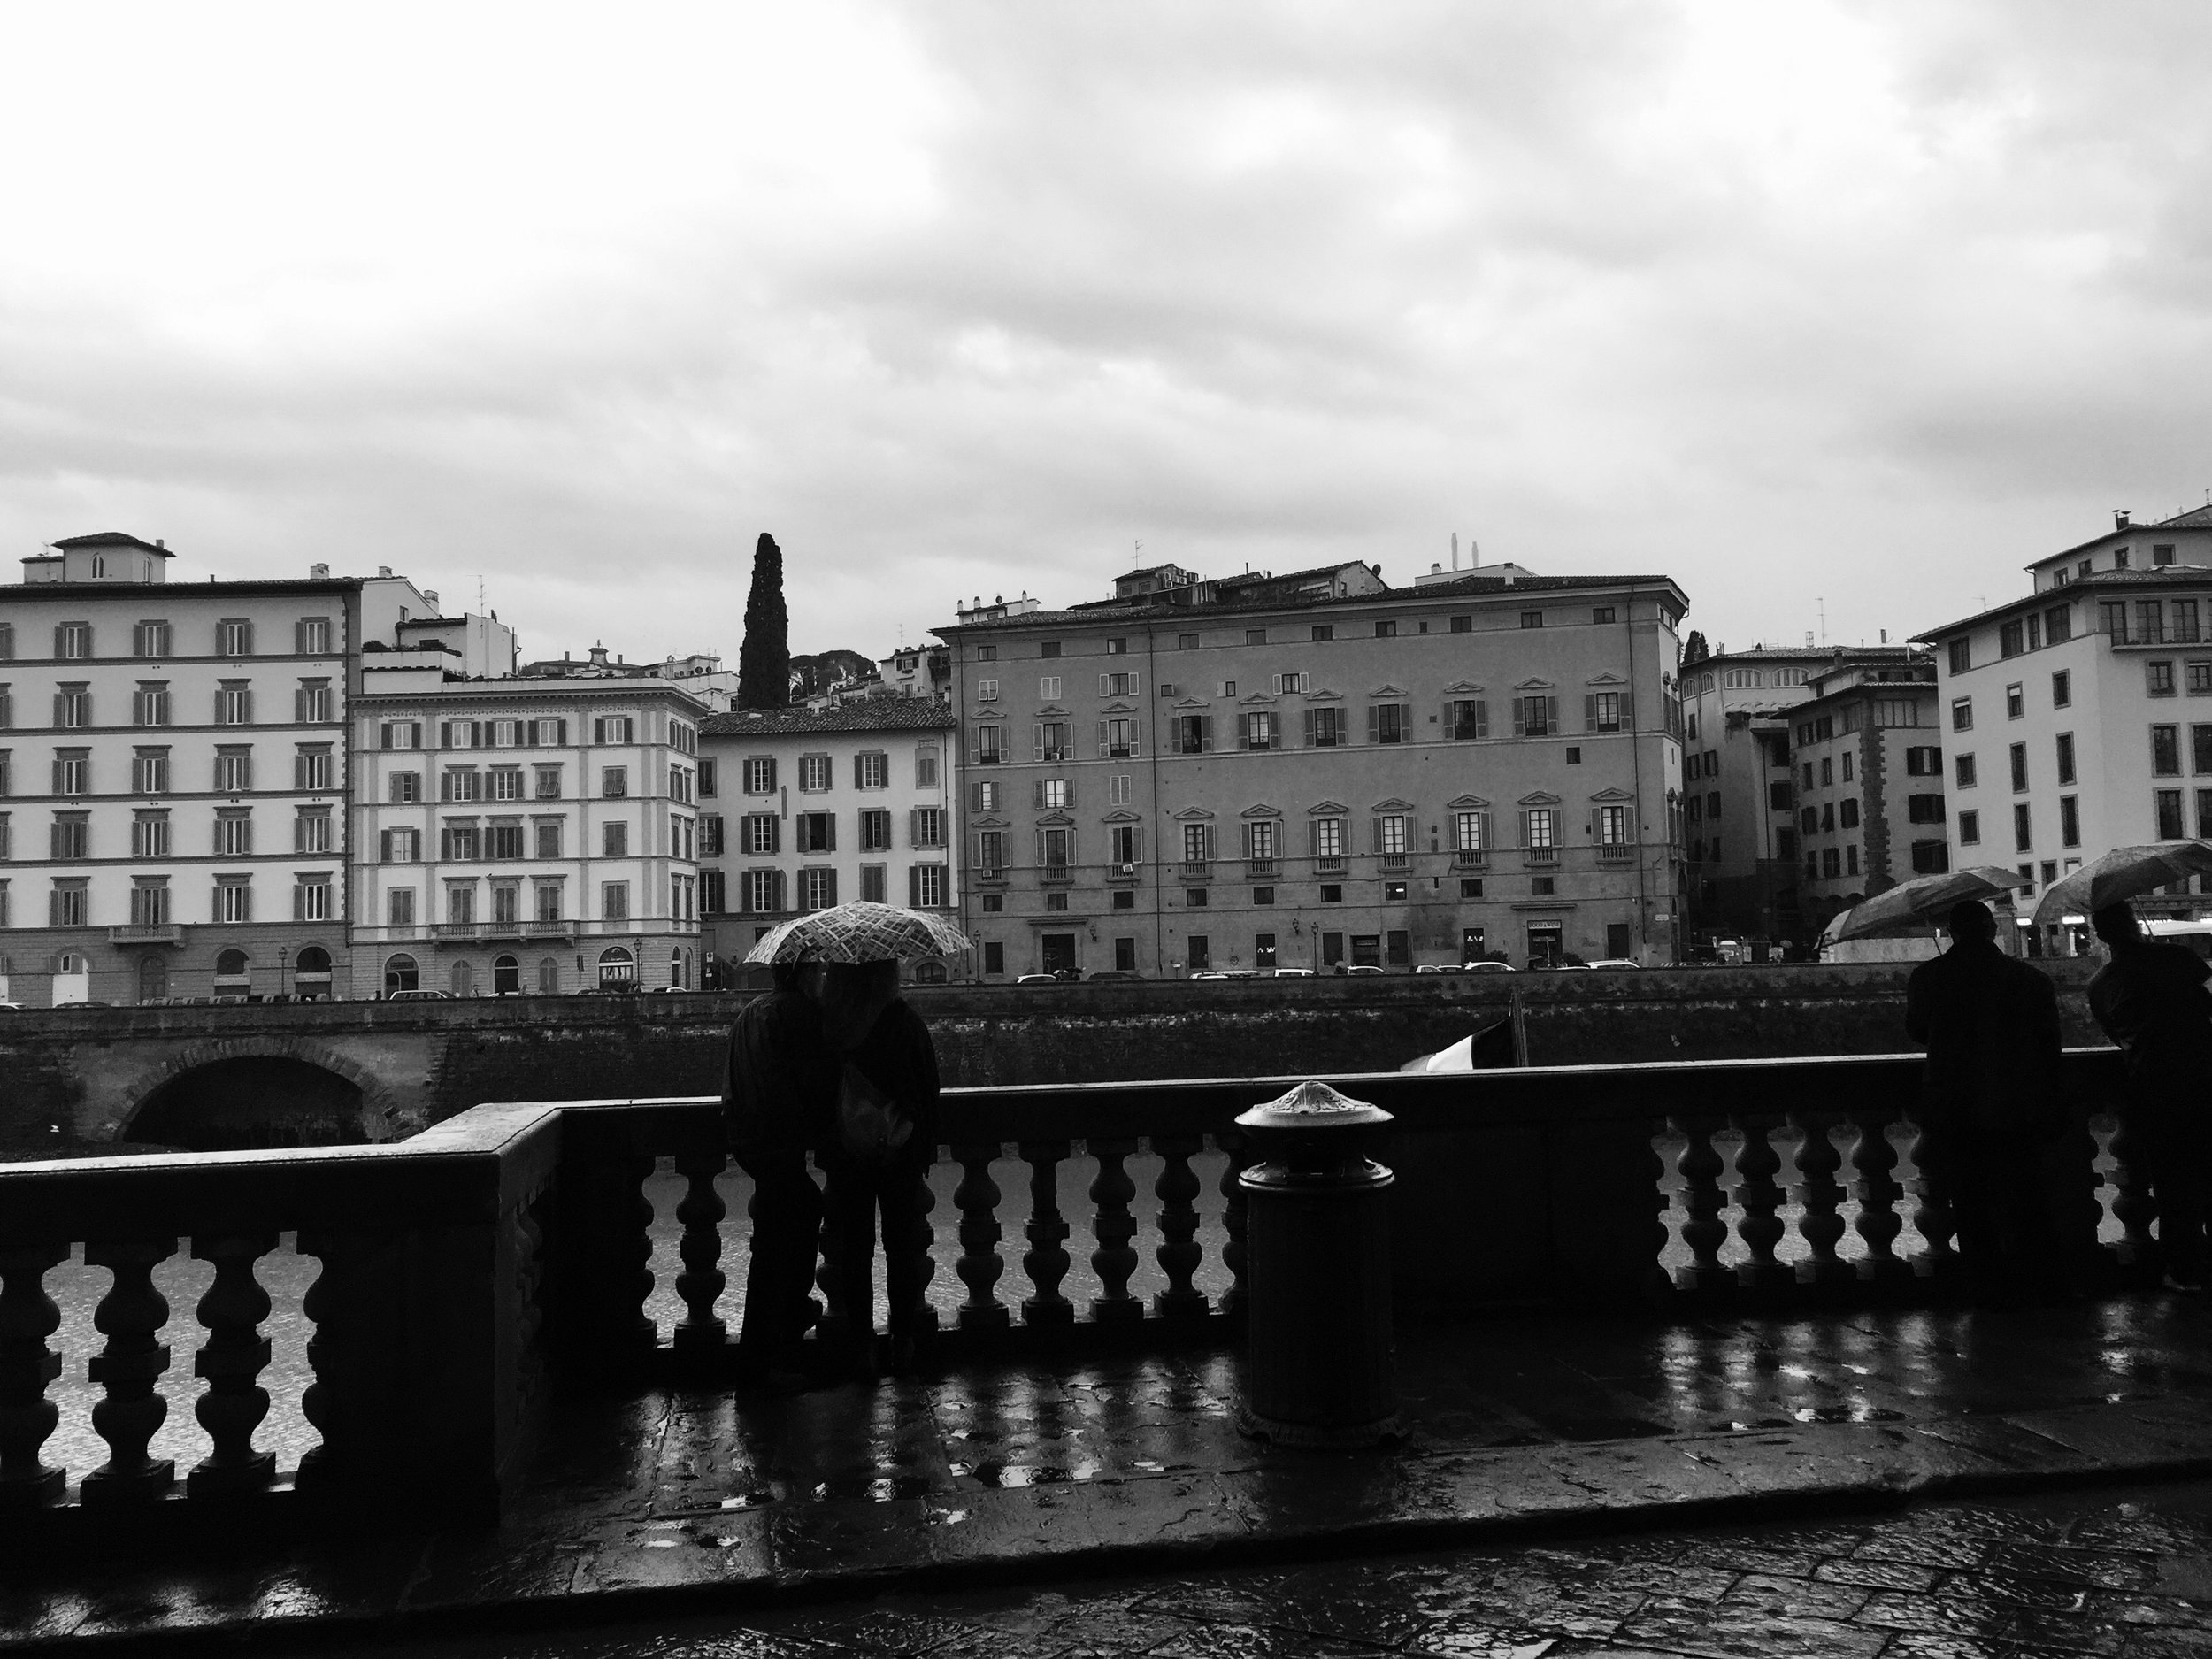 Rainy days at the Arno River